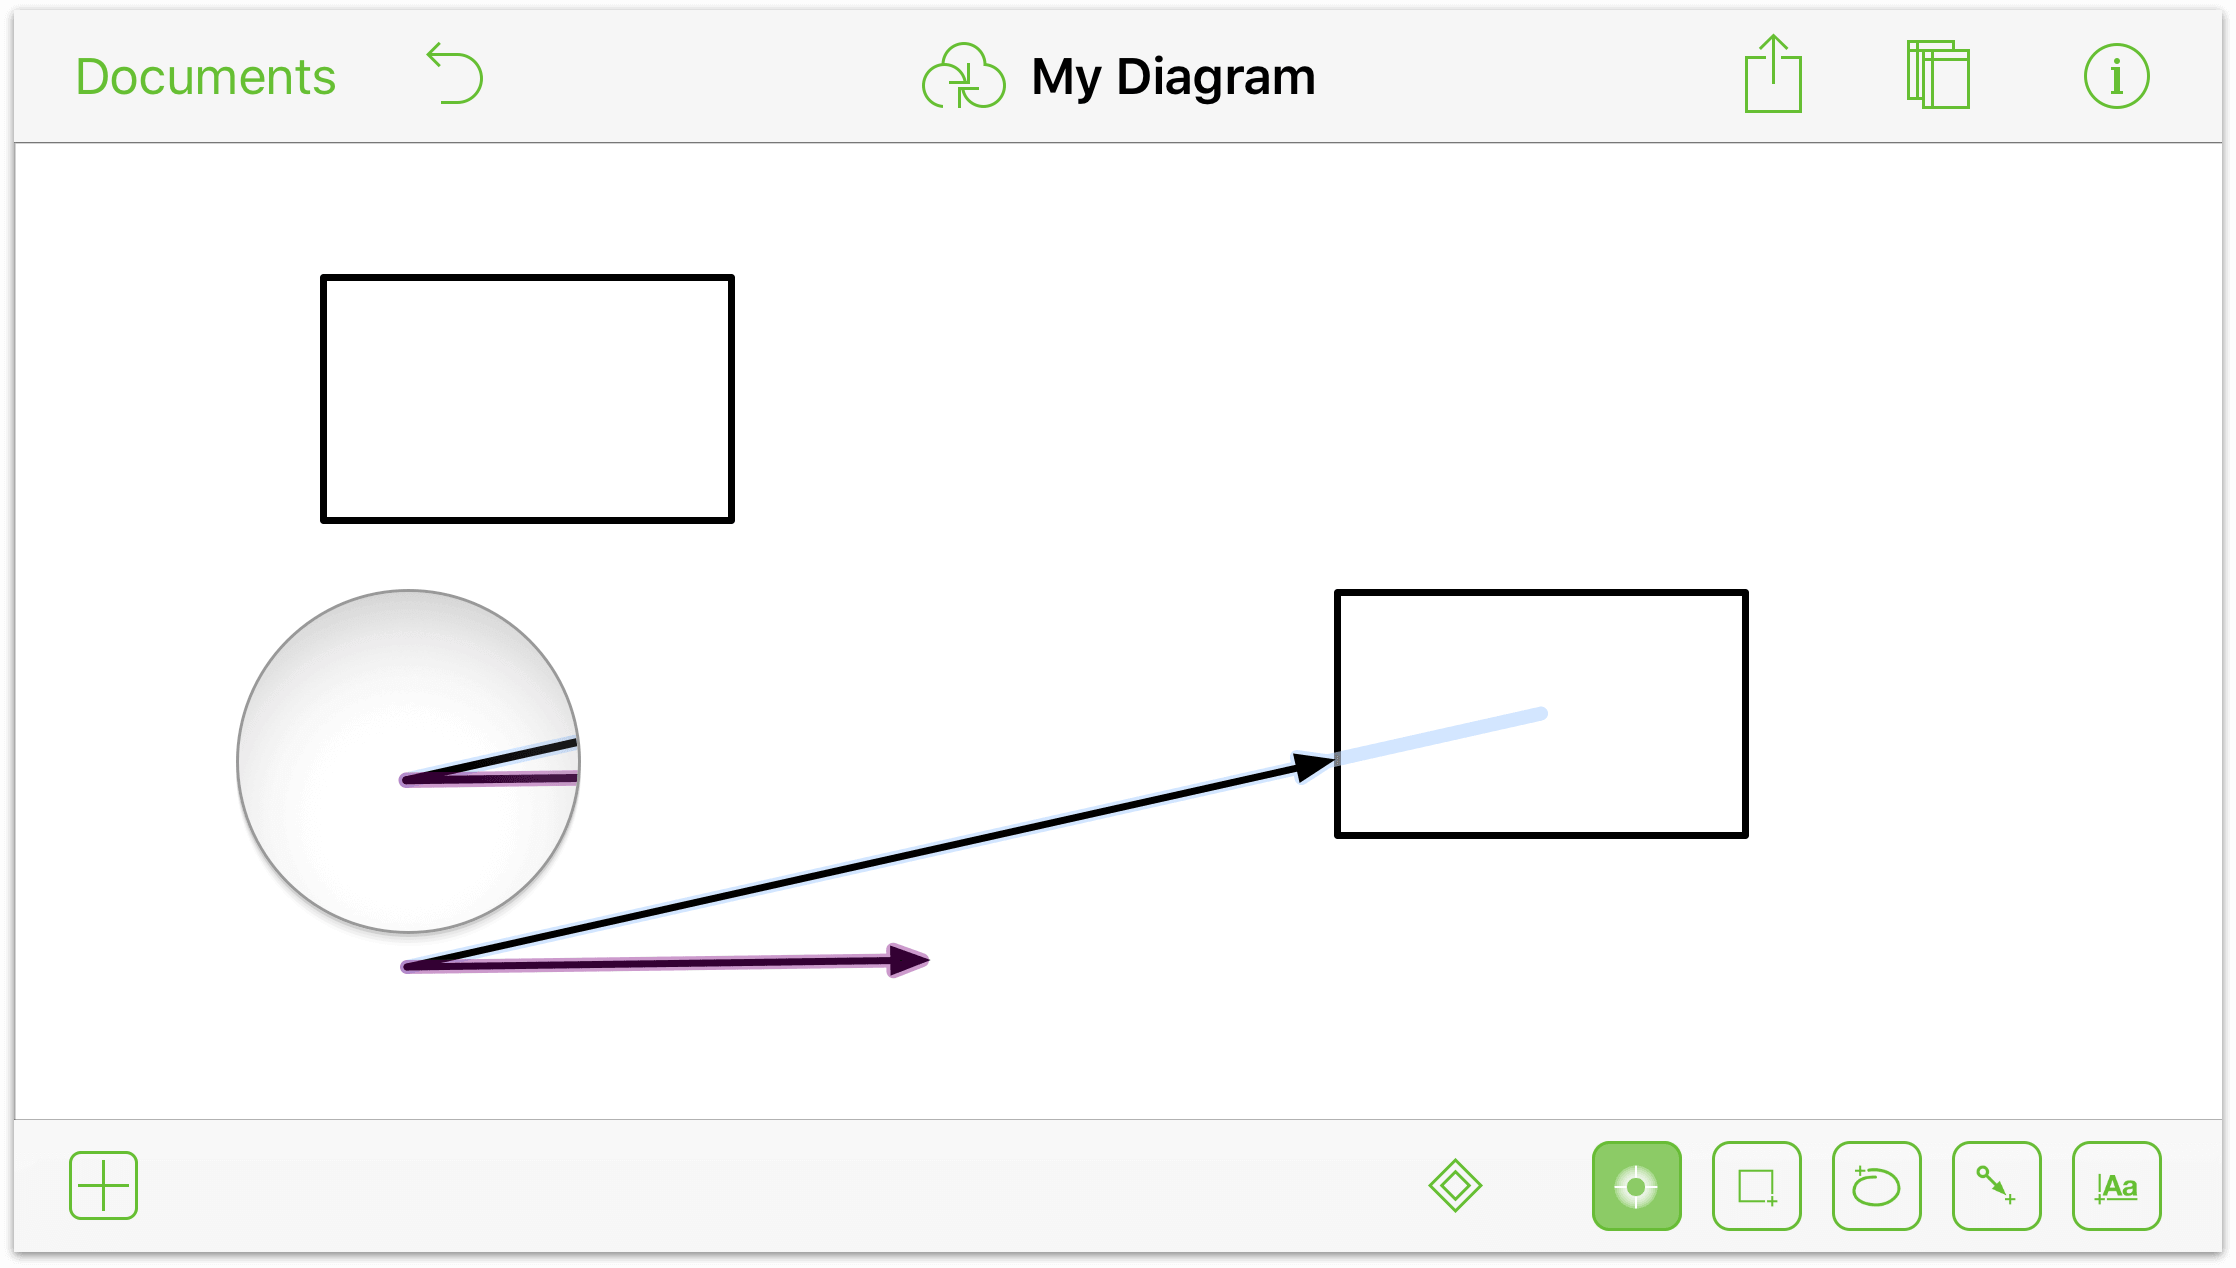 Drawing Smooth Lines Ios : Ios draw line between two points